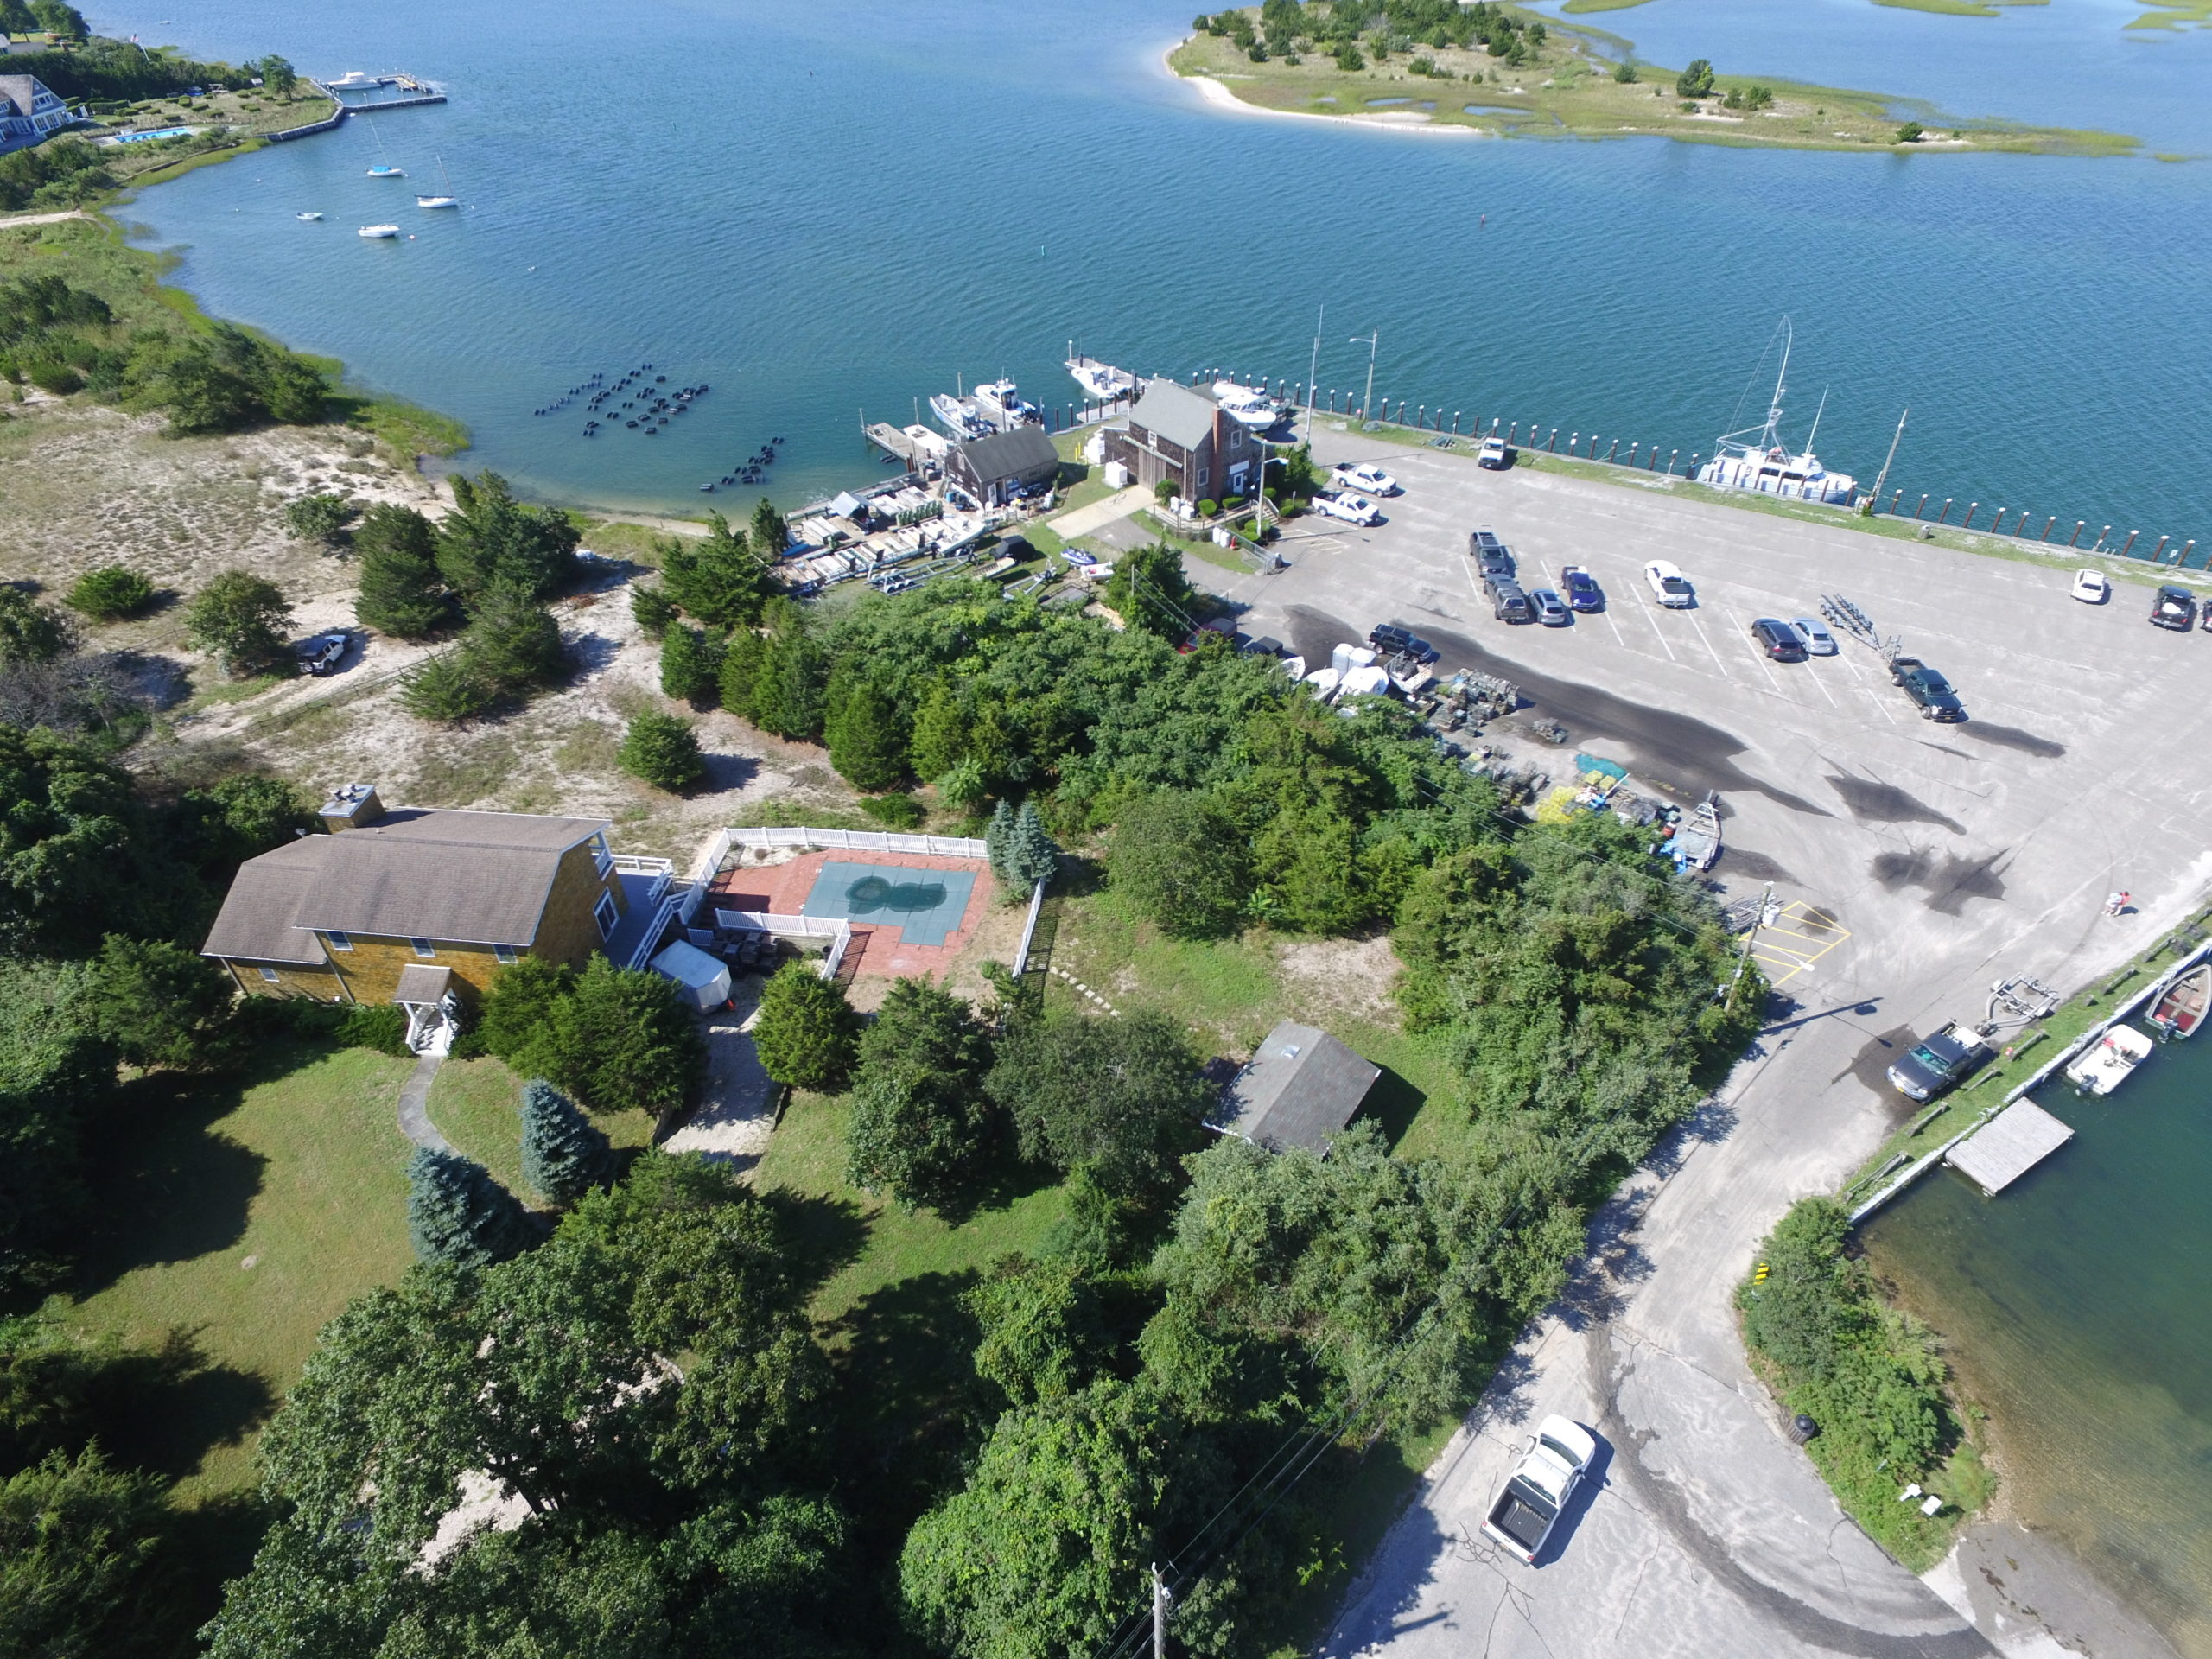 East Hampton Town will try again in 2020 for New York State grant funding to support its plans to build a new shellfish hatchery facility on Gann Road. The town purchase the house and land in the foreground in 2018 to use for the new hatchery facility.